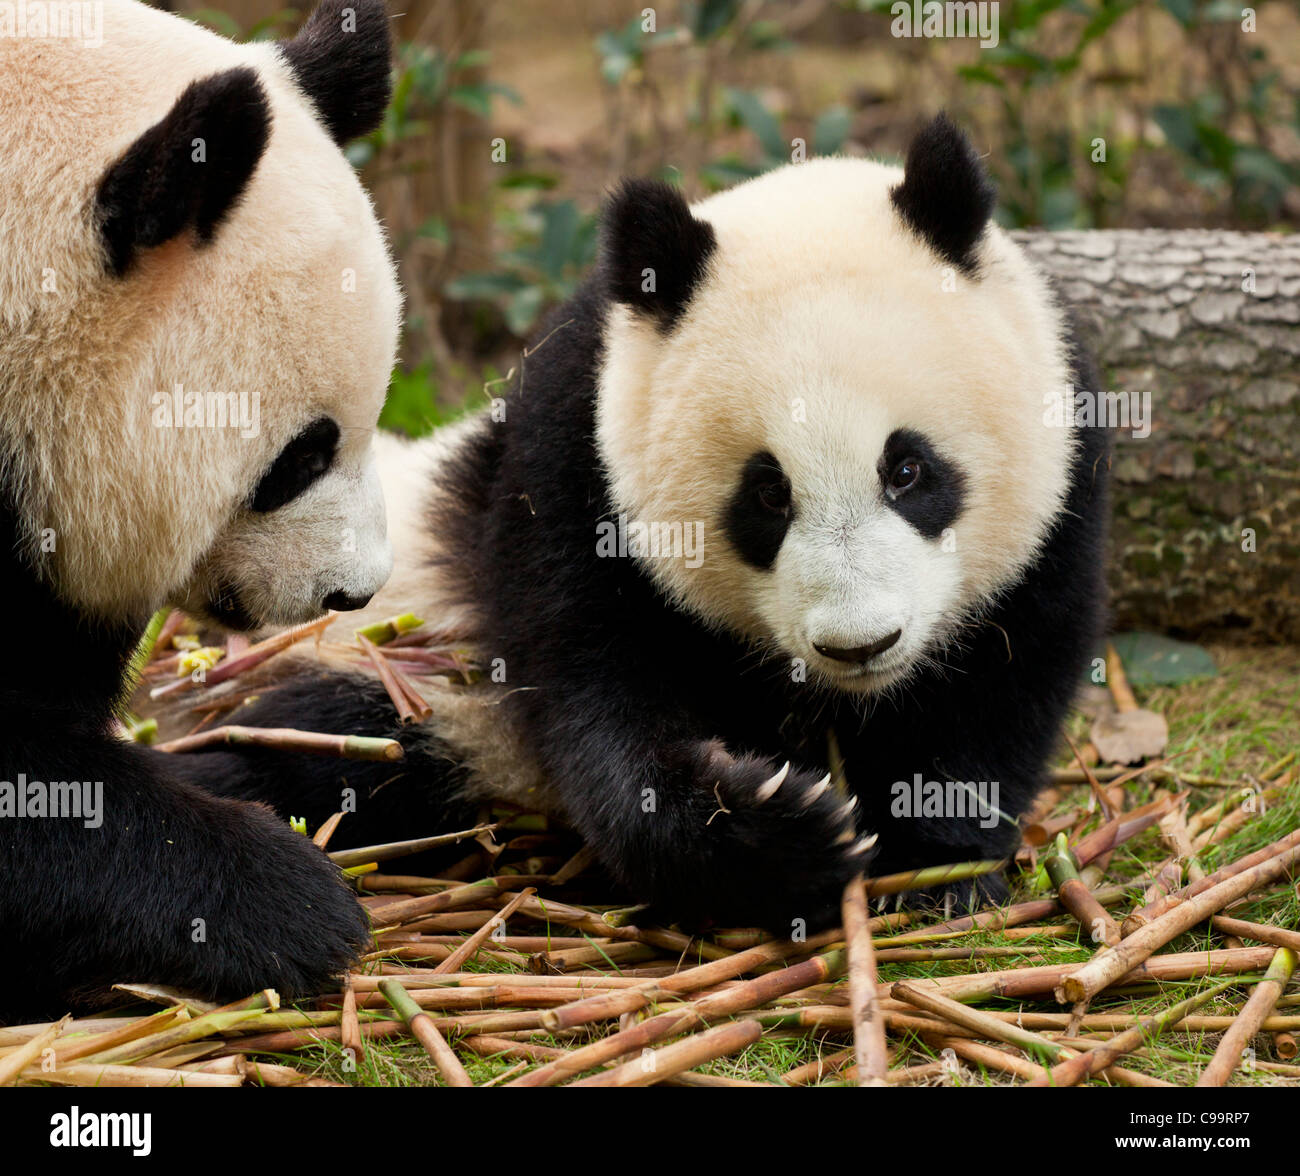 Giant Pandas, Ailuropoda melanoleuca Panda Breeding and research centre, Chengdu PRC, People's Republic of China, - Stock Image